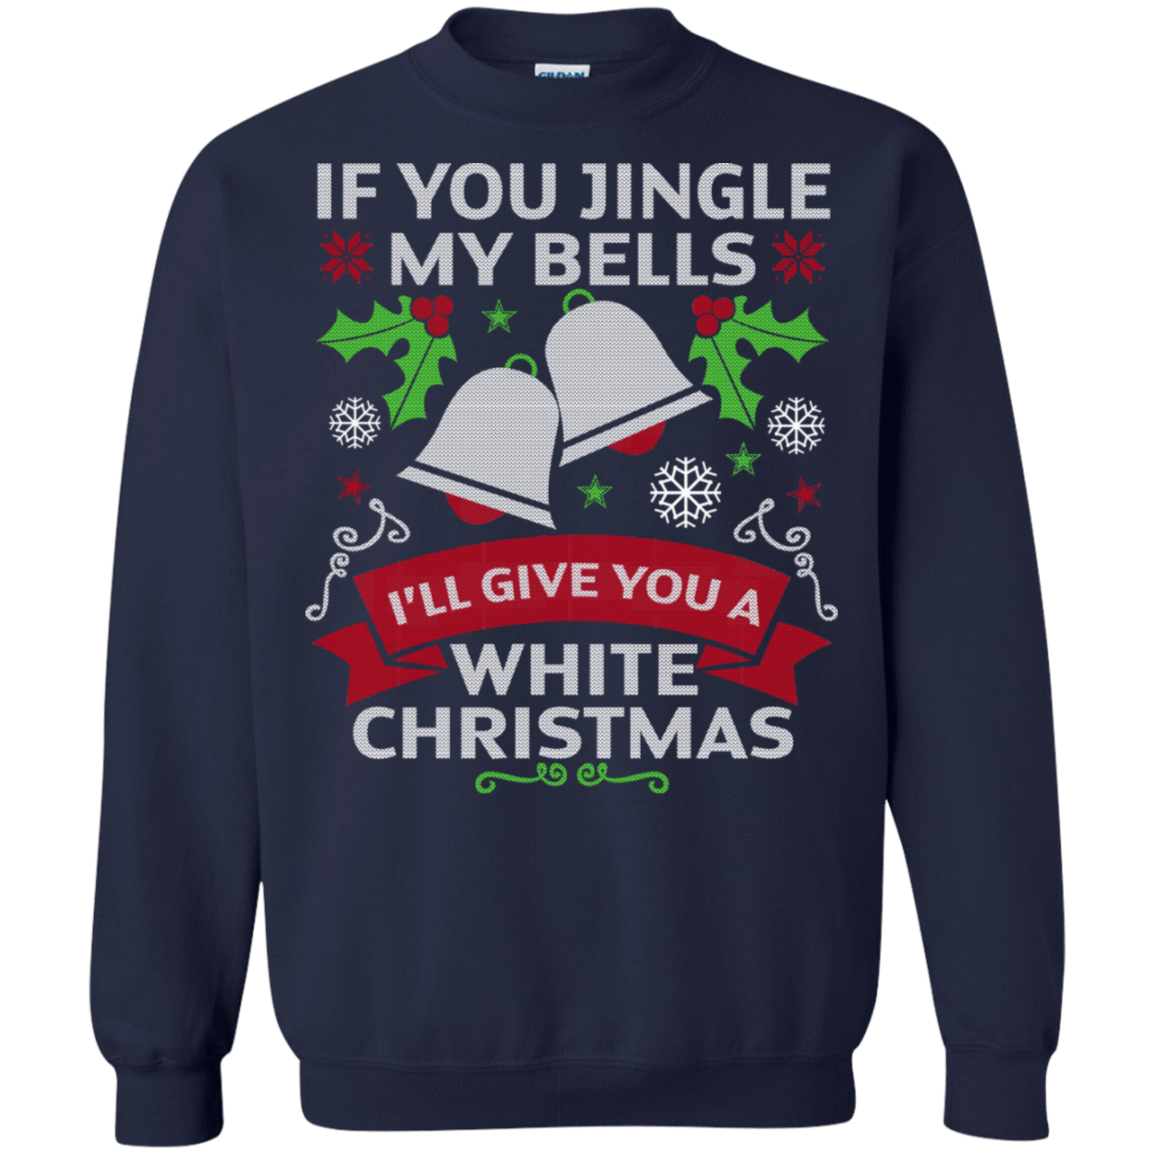 If You Jingle My Bells I'll Give You A White Christmas Sweater 564-5009-72772288-25198 - Tee Ript